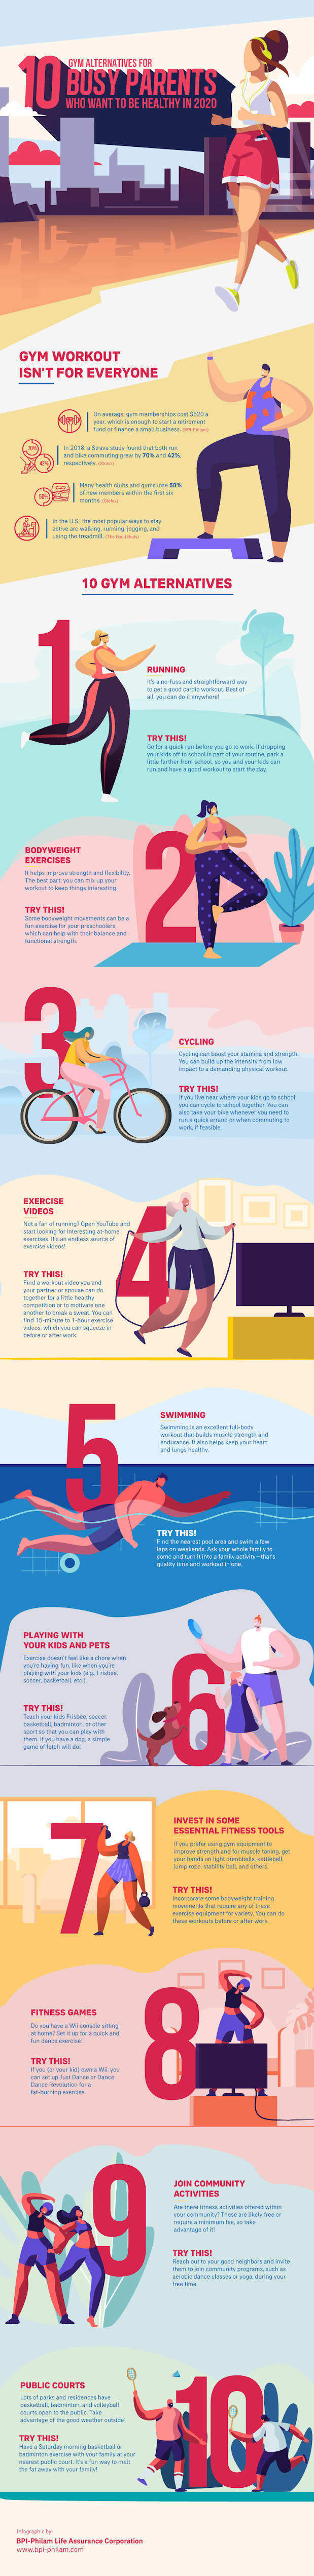 10 Gym Alternatives For Busy Parents Who Want To Be Fit/healthy In 2020 #infographic